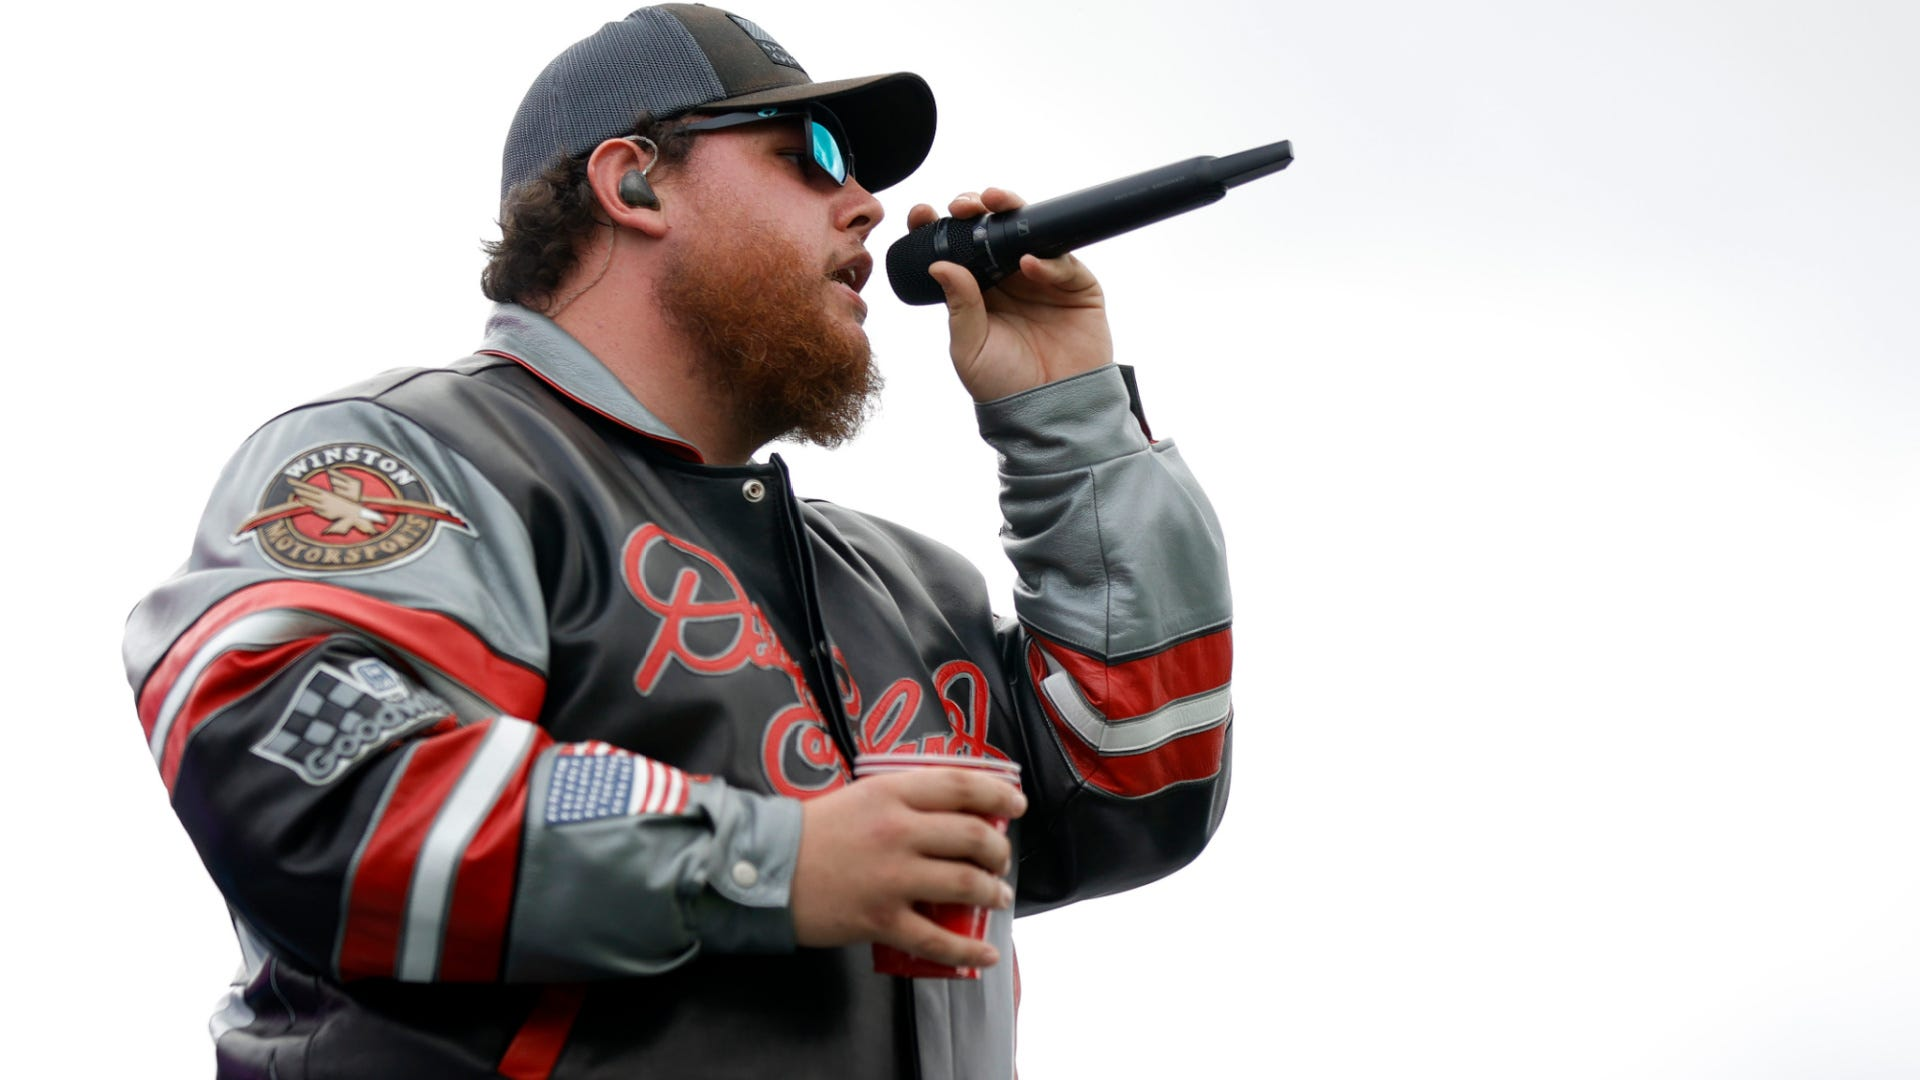 2021 ACM Awards: Here's why Luke Combs should win 'Entertainer of the Year'